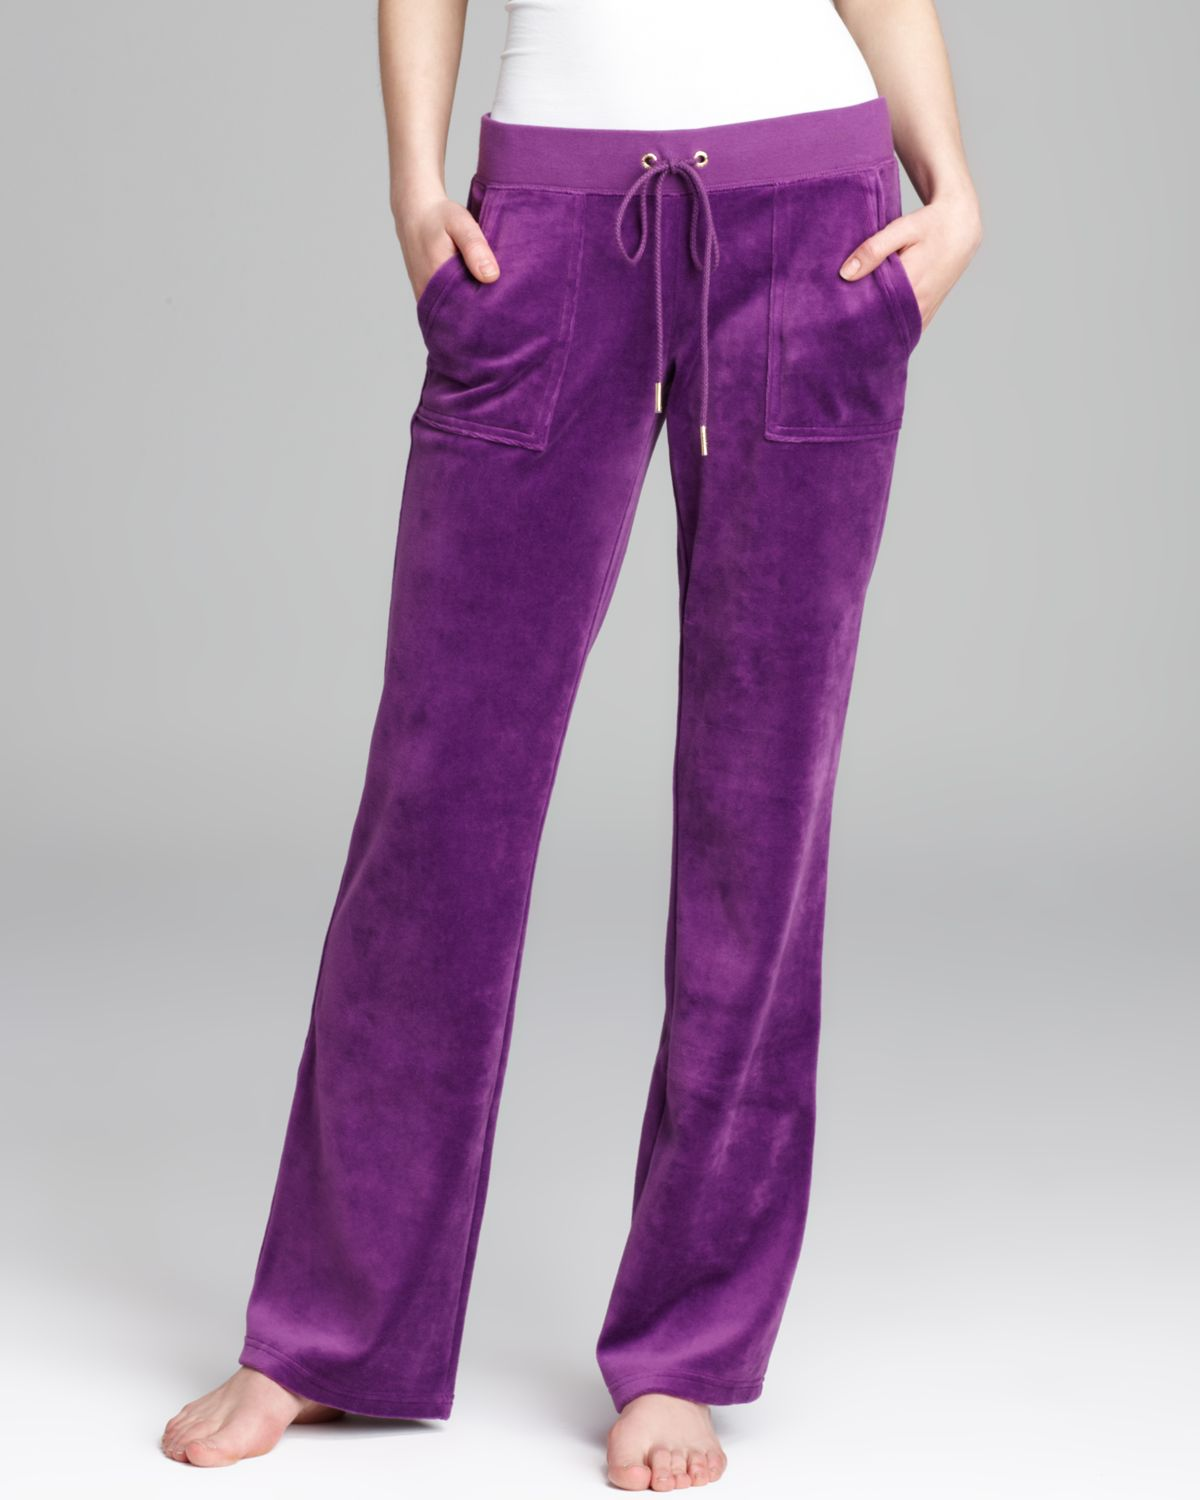 e67d8ae7 Juicy Couture Bootcut Pants Velour Bling in Purple - Lyst